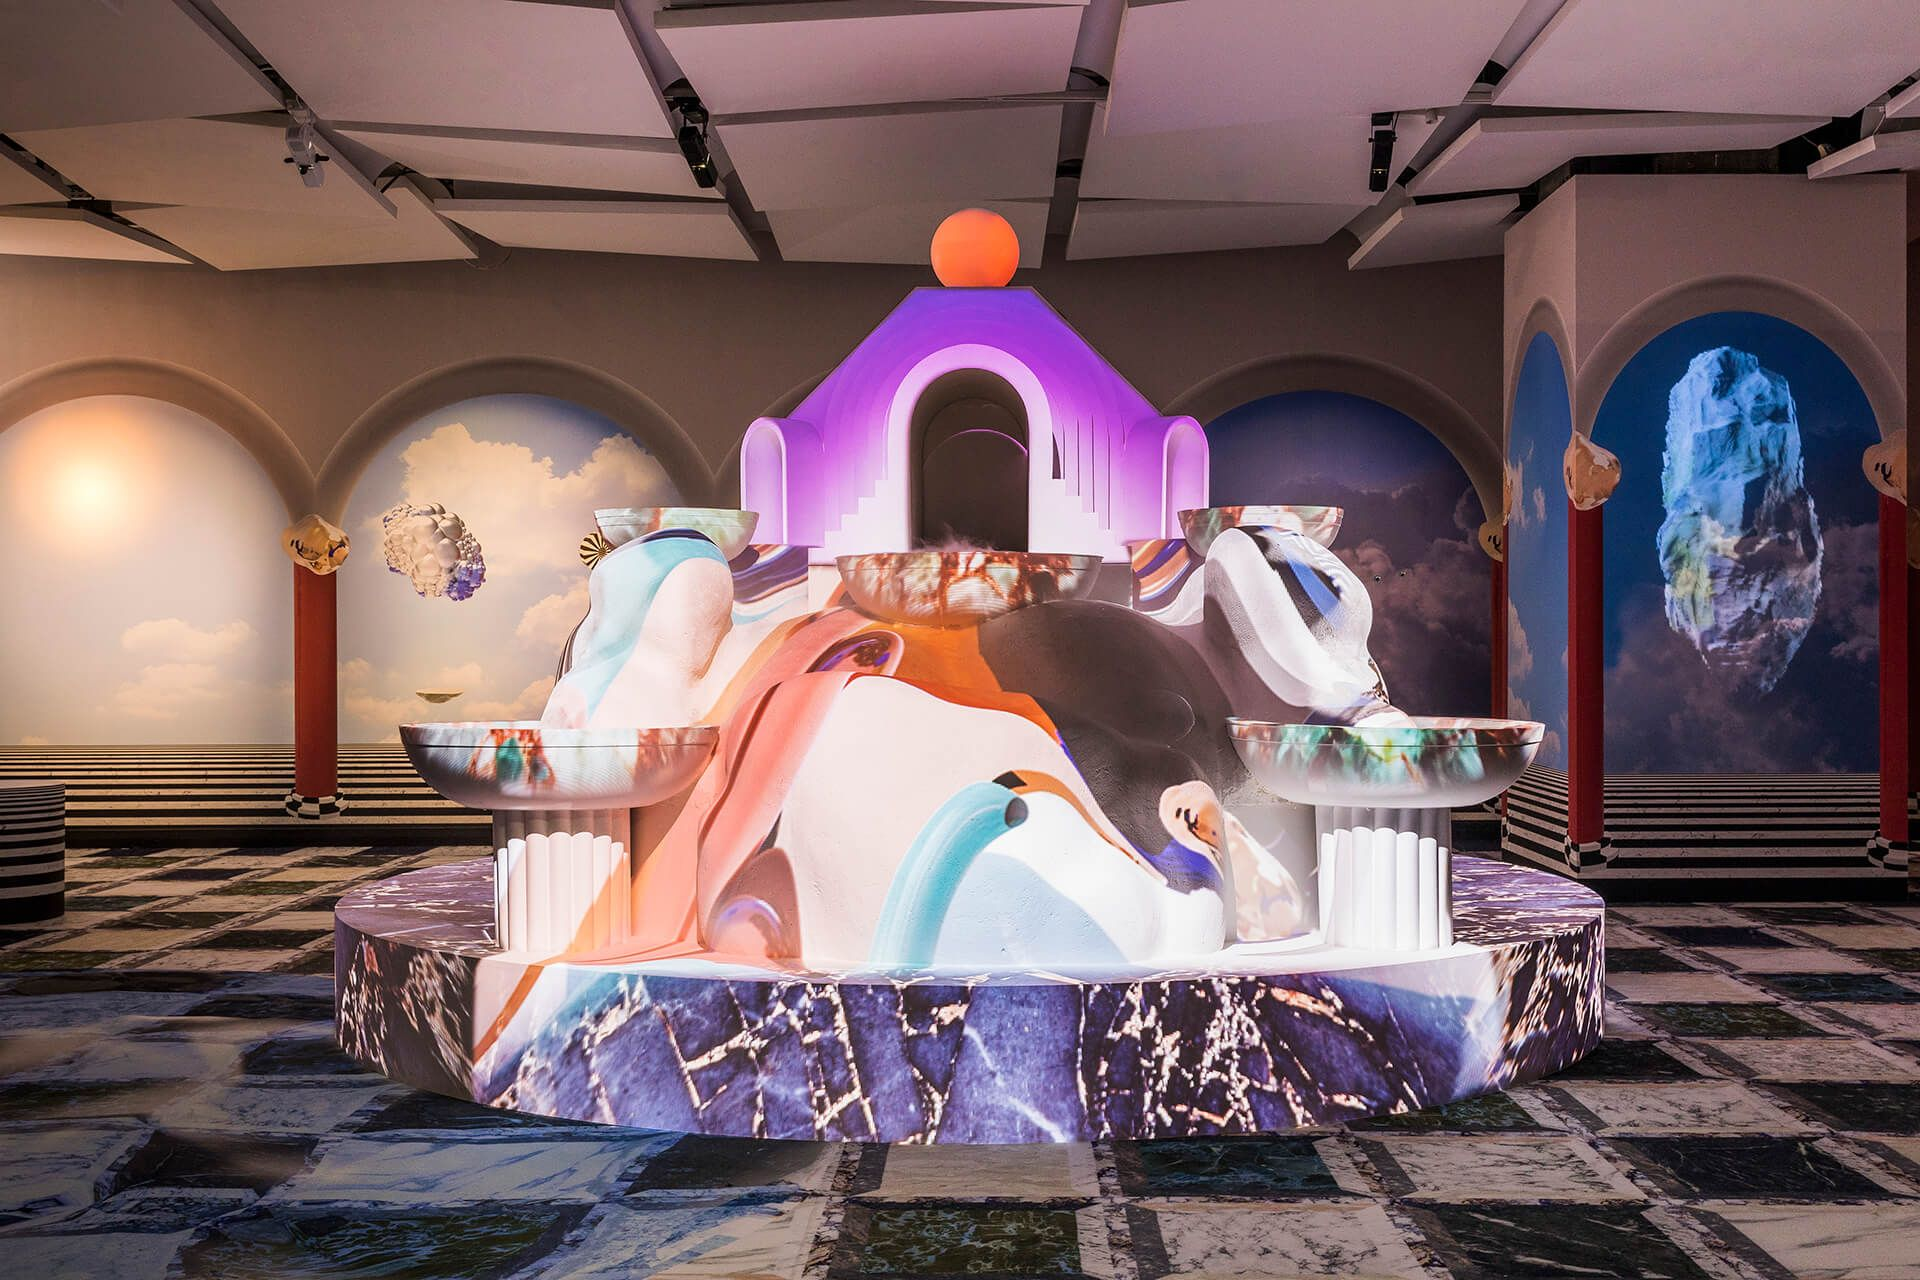 With An Art Exhibition Galeries Lafayette Adds Cultural Currency To Shopping Exhibition Galeries Lafayette Art Exhibition